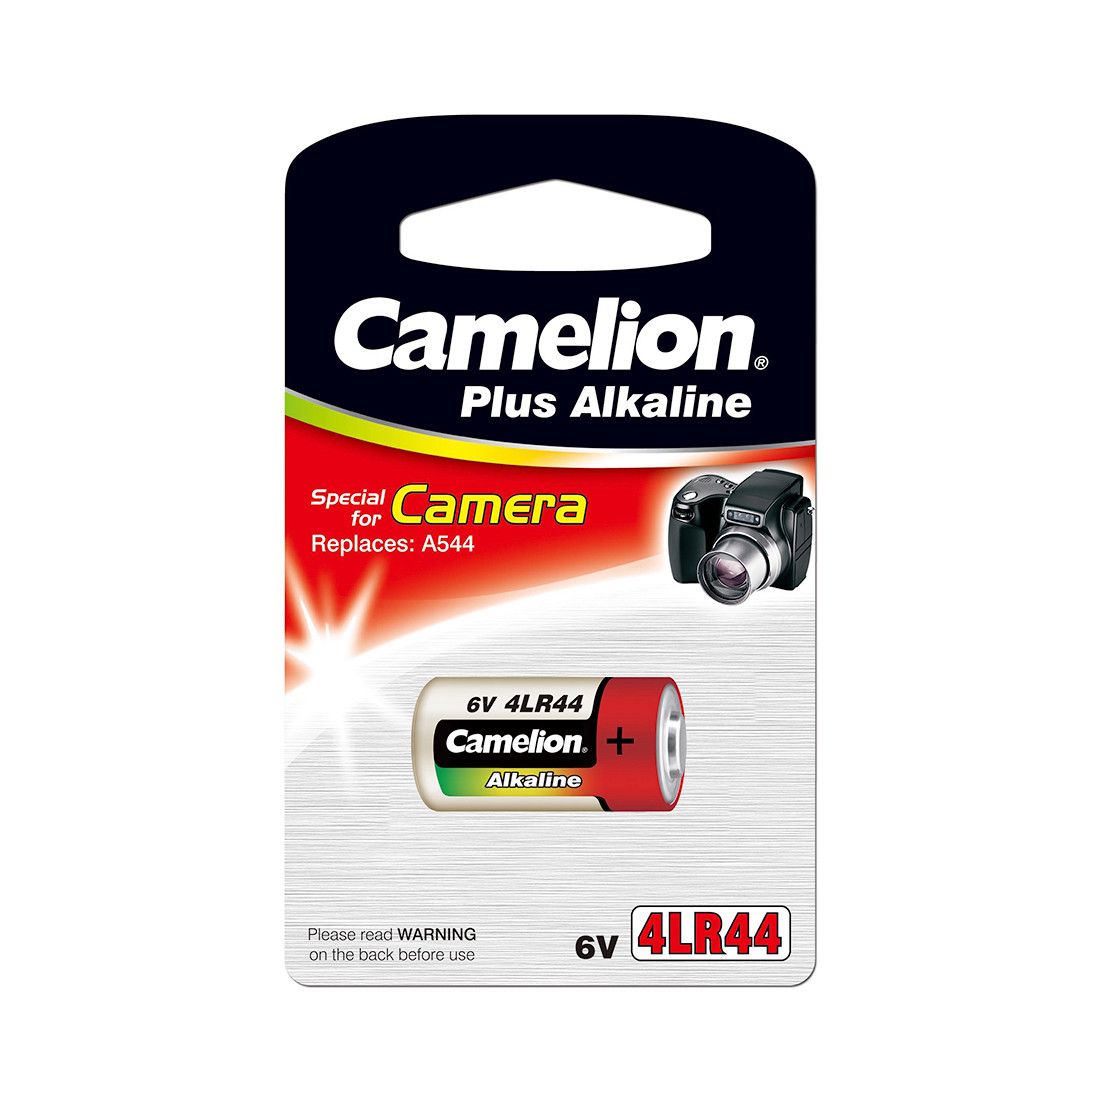 Батарейка, CAMELION, 4LR44-BP1C, Photo Plus Alkaline, 6V, 150 mAh, 1 шт., Блистер